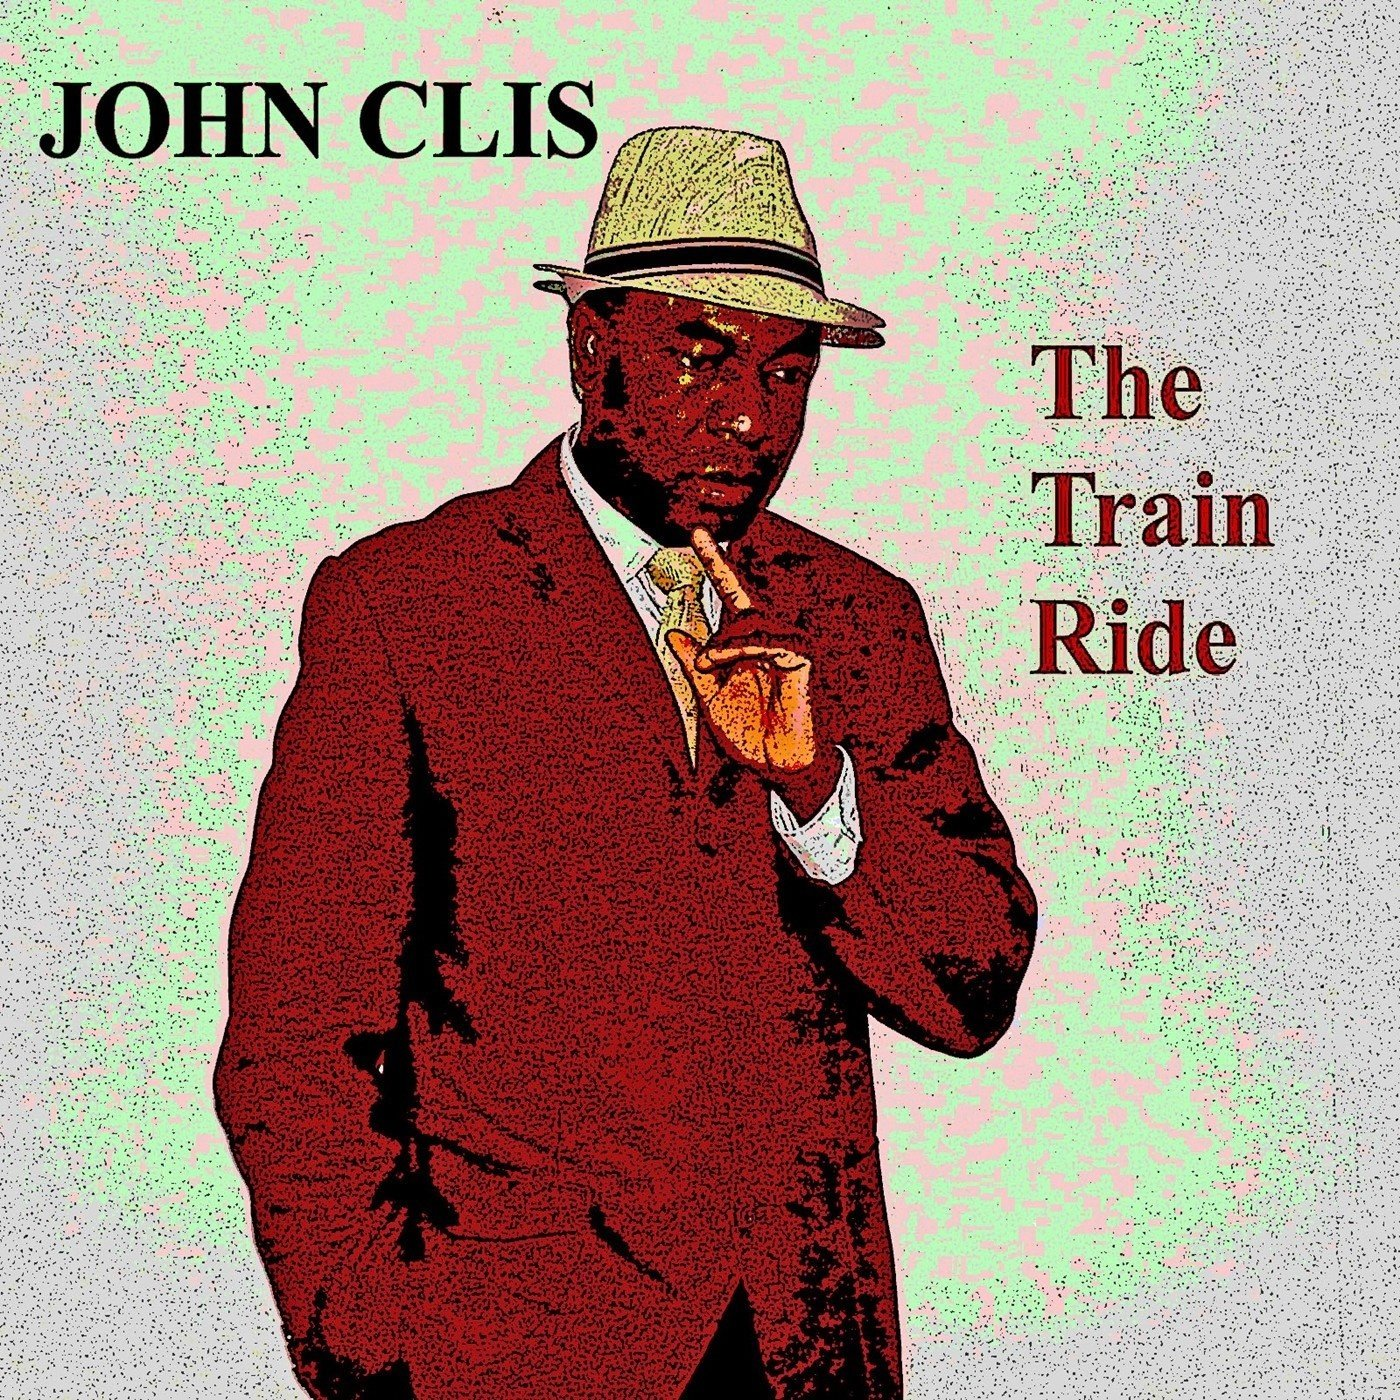 https://0201.nccdn.net/1_2/000/000/090/073/JOHN-CLIS-1ST-CD-1400x1400.jpg